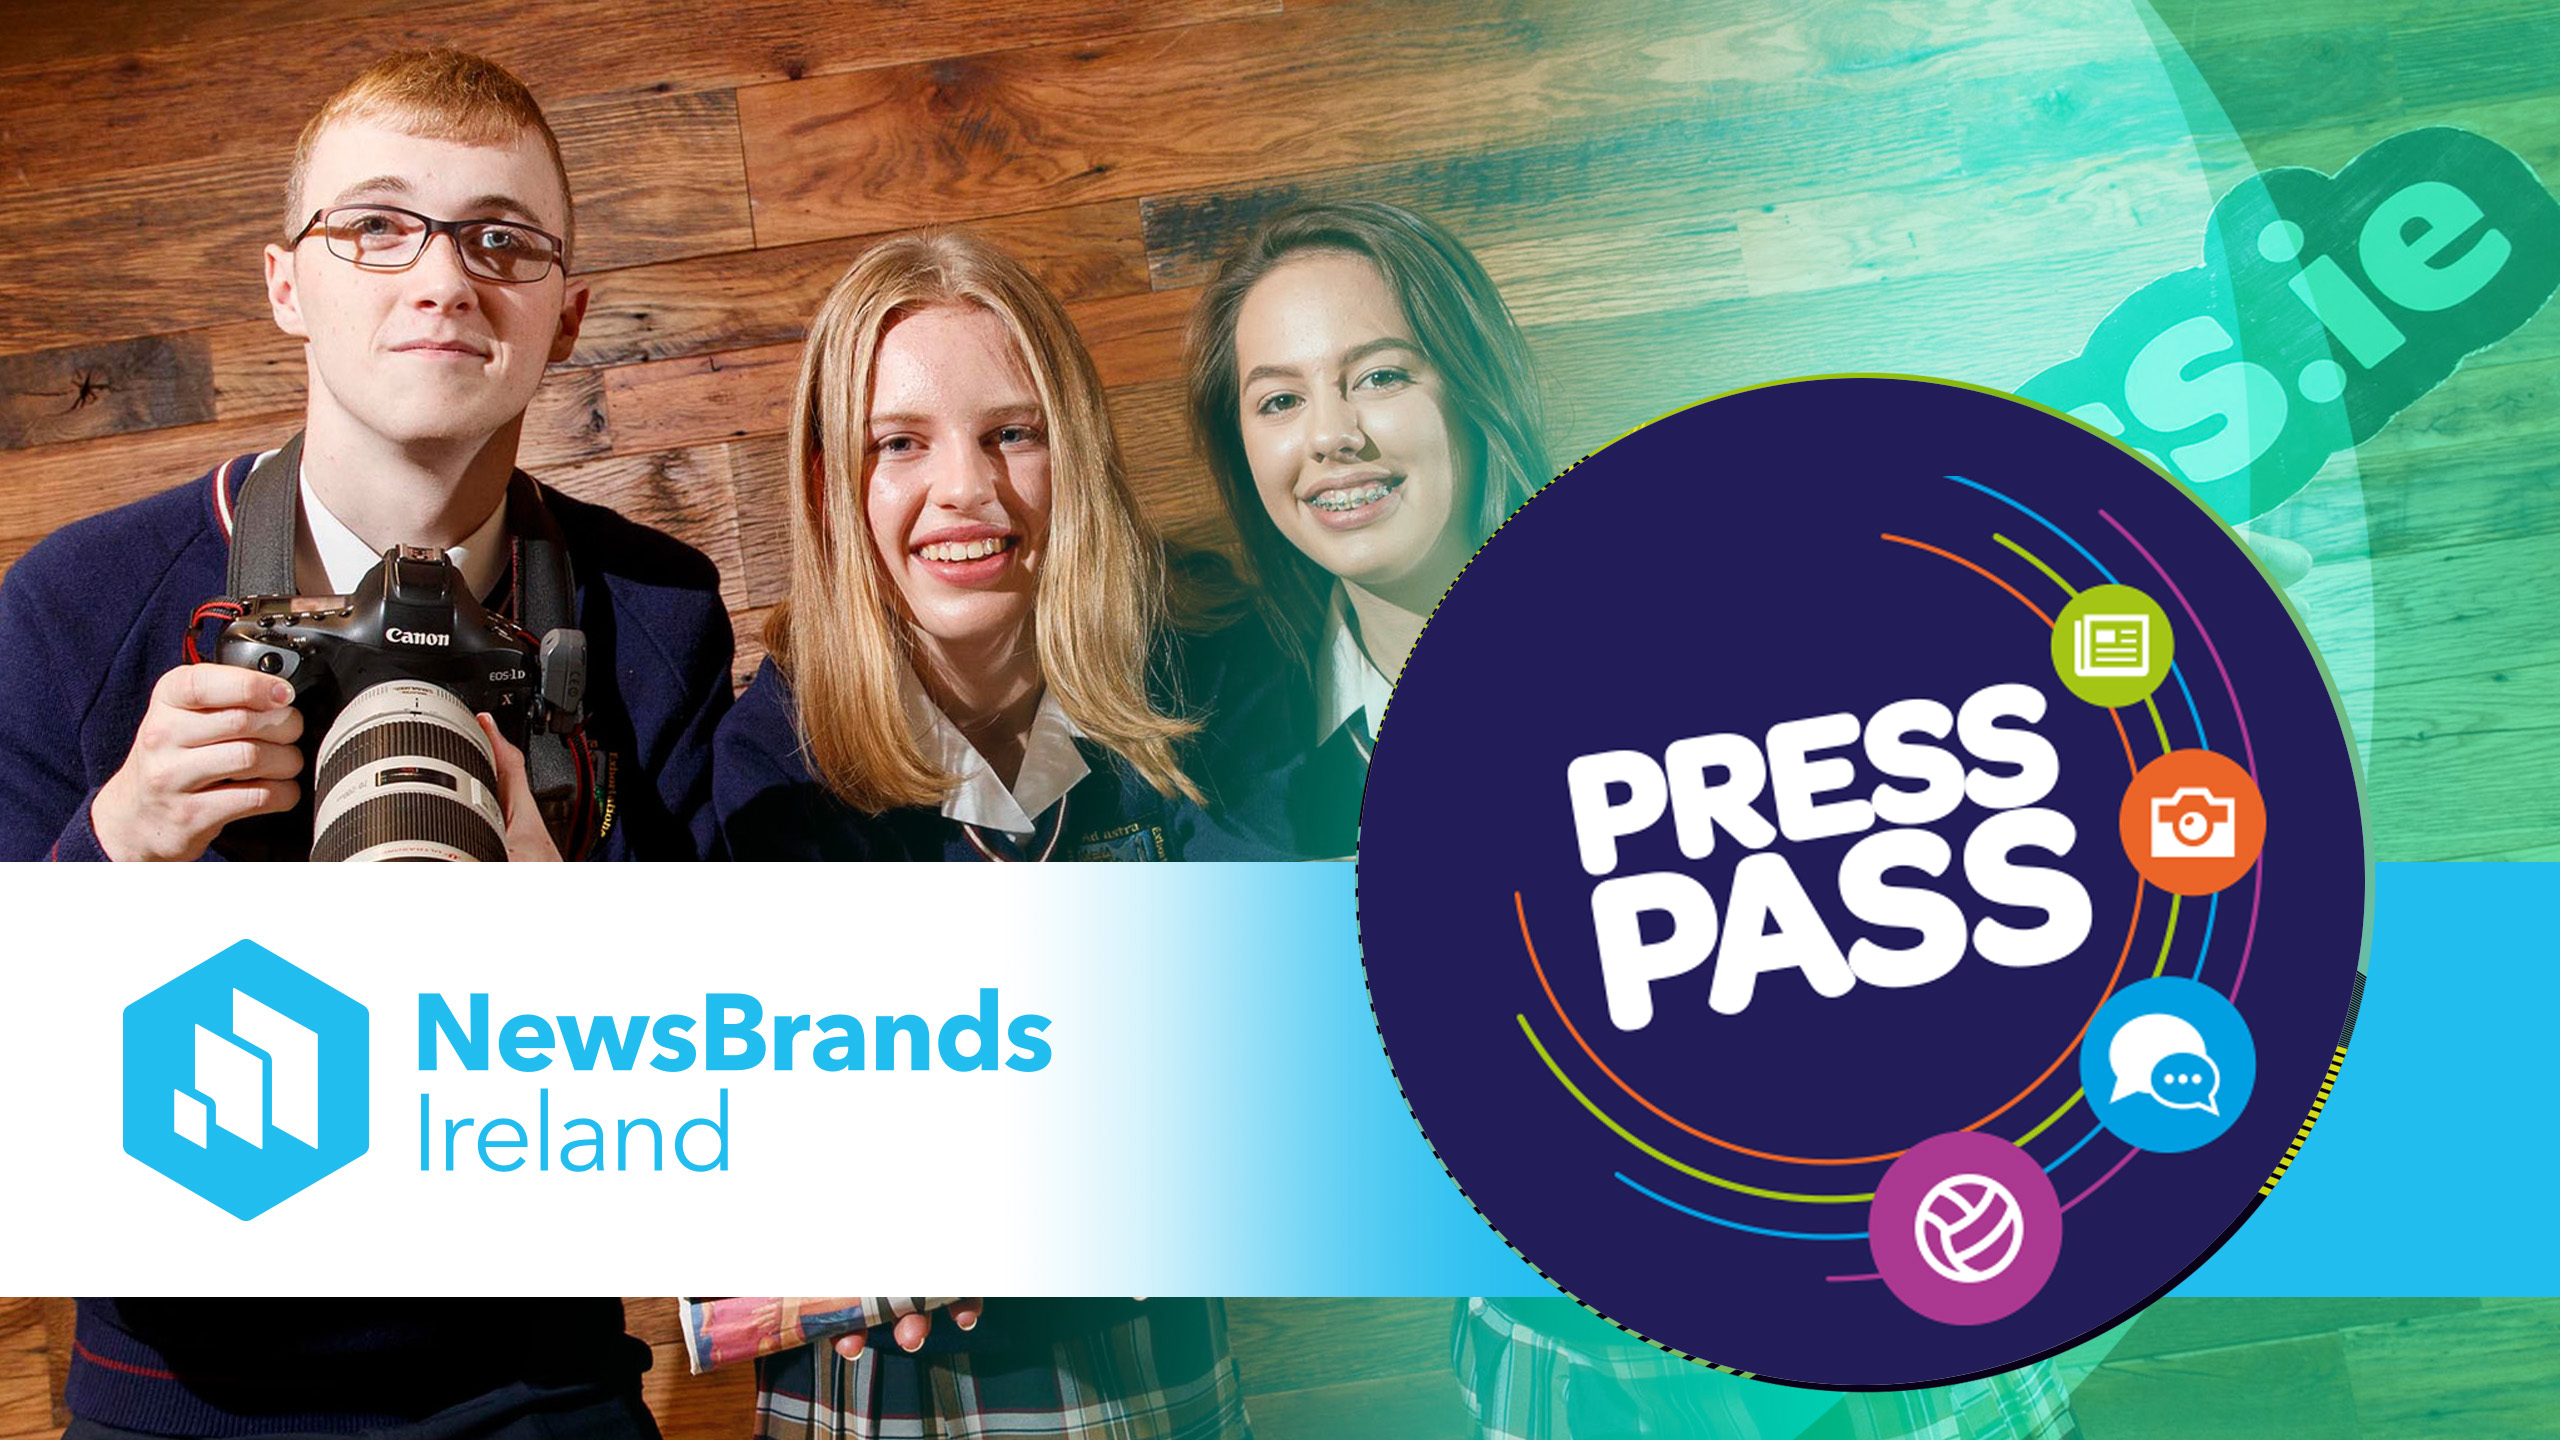 press pass competition ireland